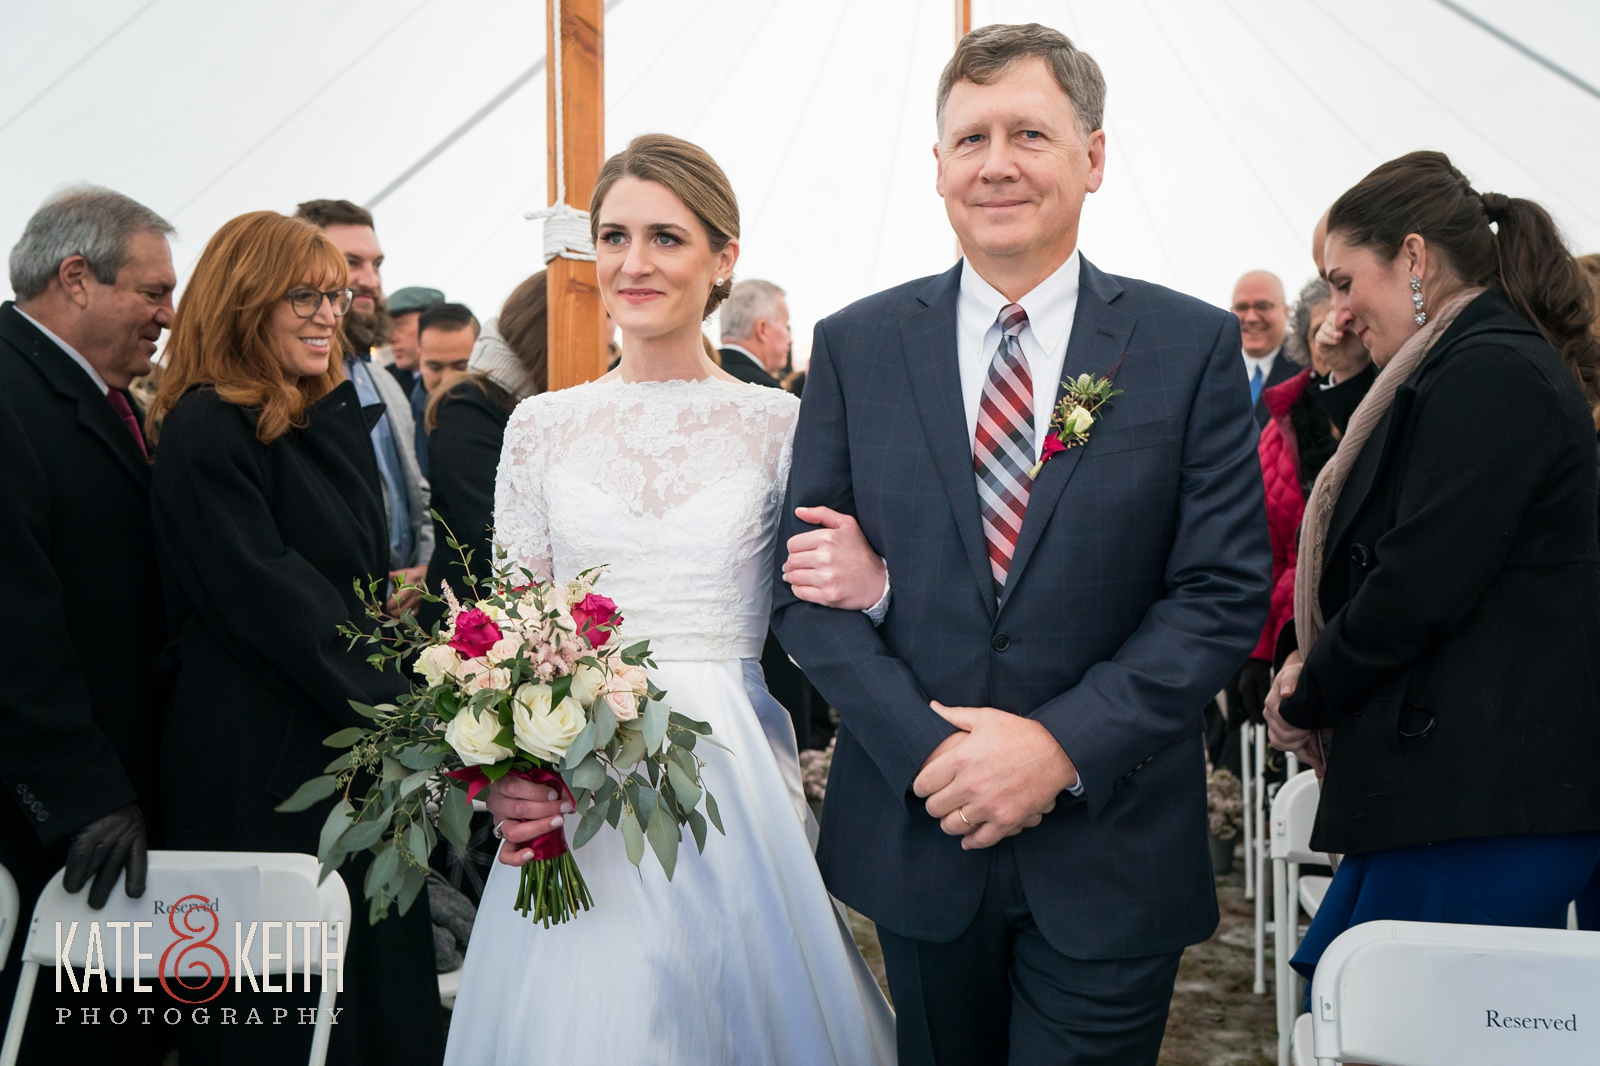 Boathouse Blooms florist, Your Dreams Bridal shop, Men's Warehouse, Joseph Abud, winter wedding, tented ceremony, New Hampshire wedding, Barn on the Pemi, wedding ceremony, bride with father, processional